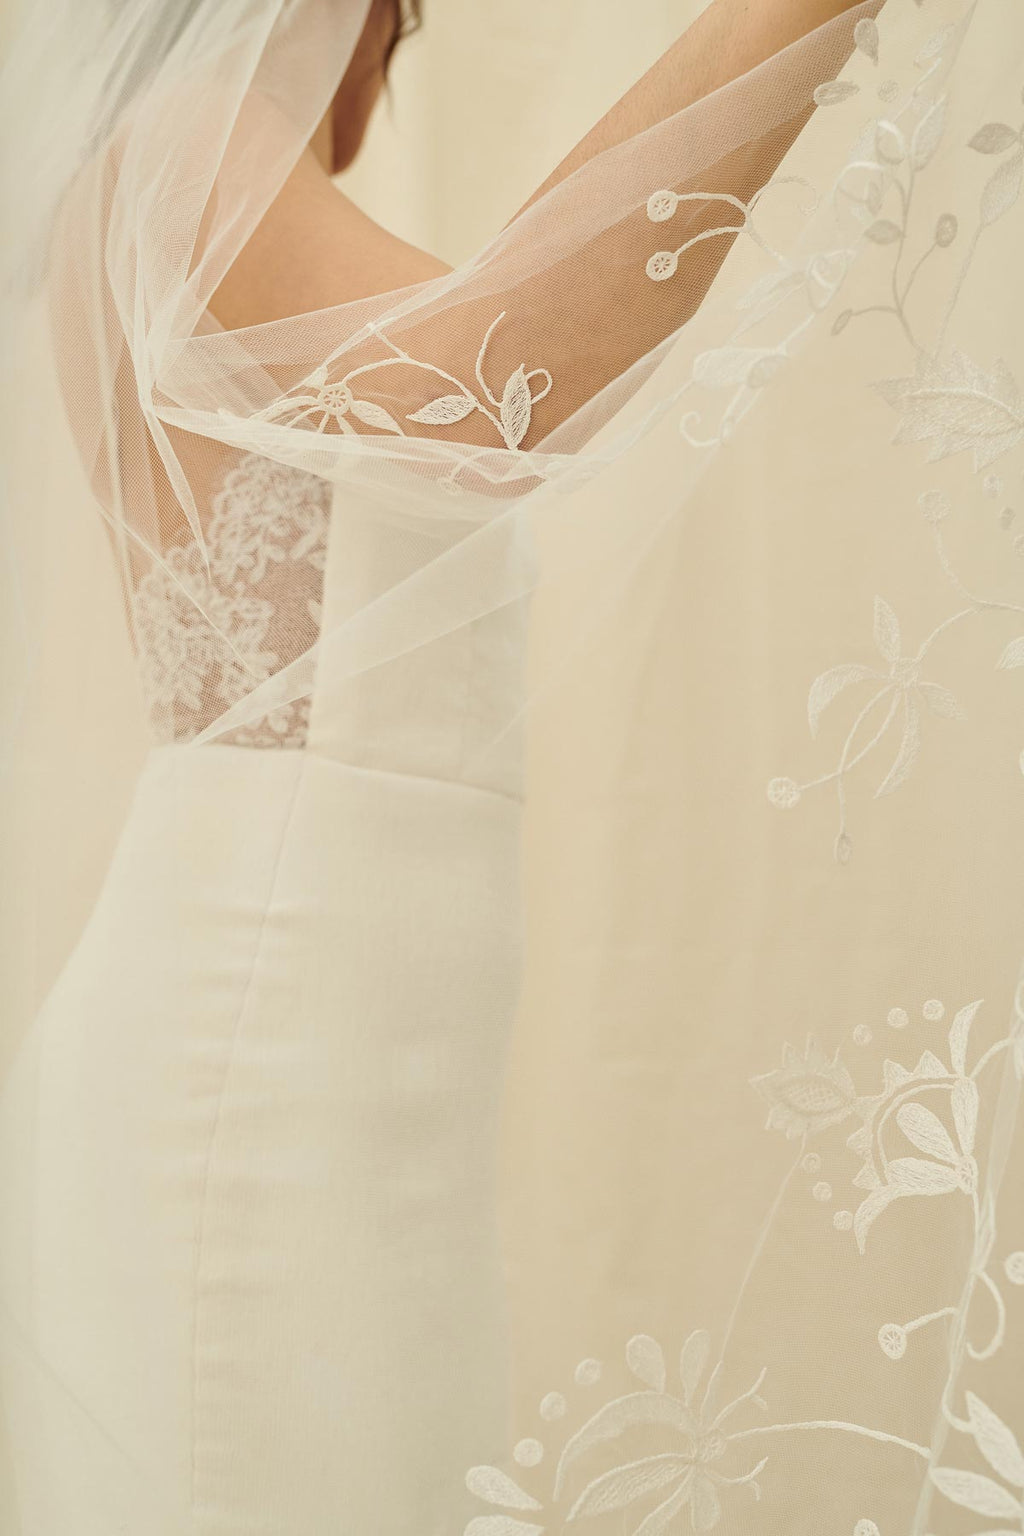 A delicate bridal veil with floral embroidery